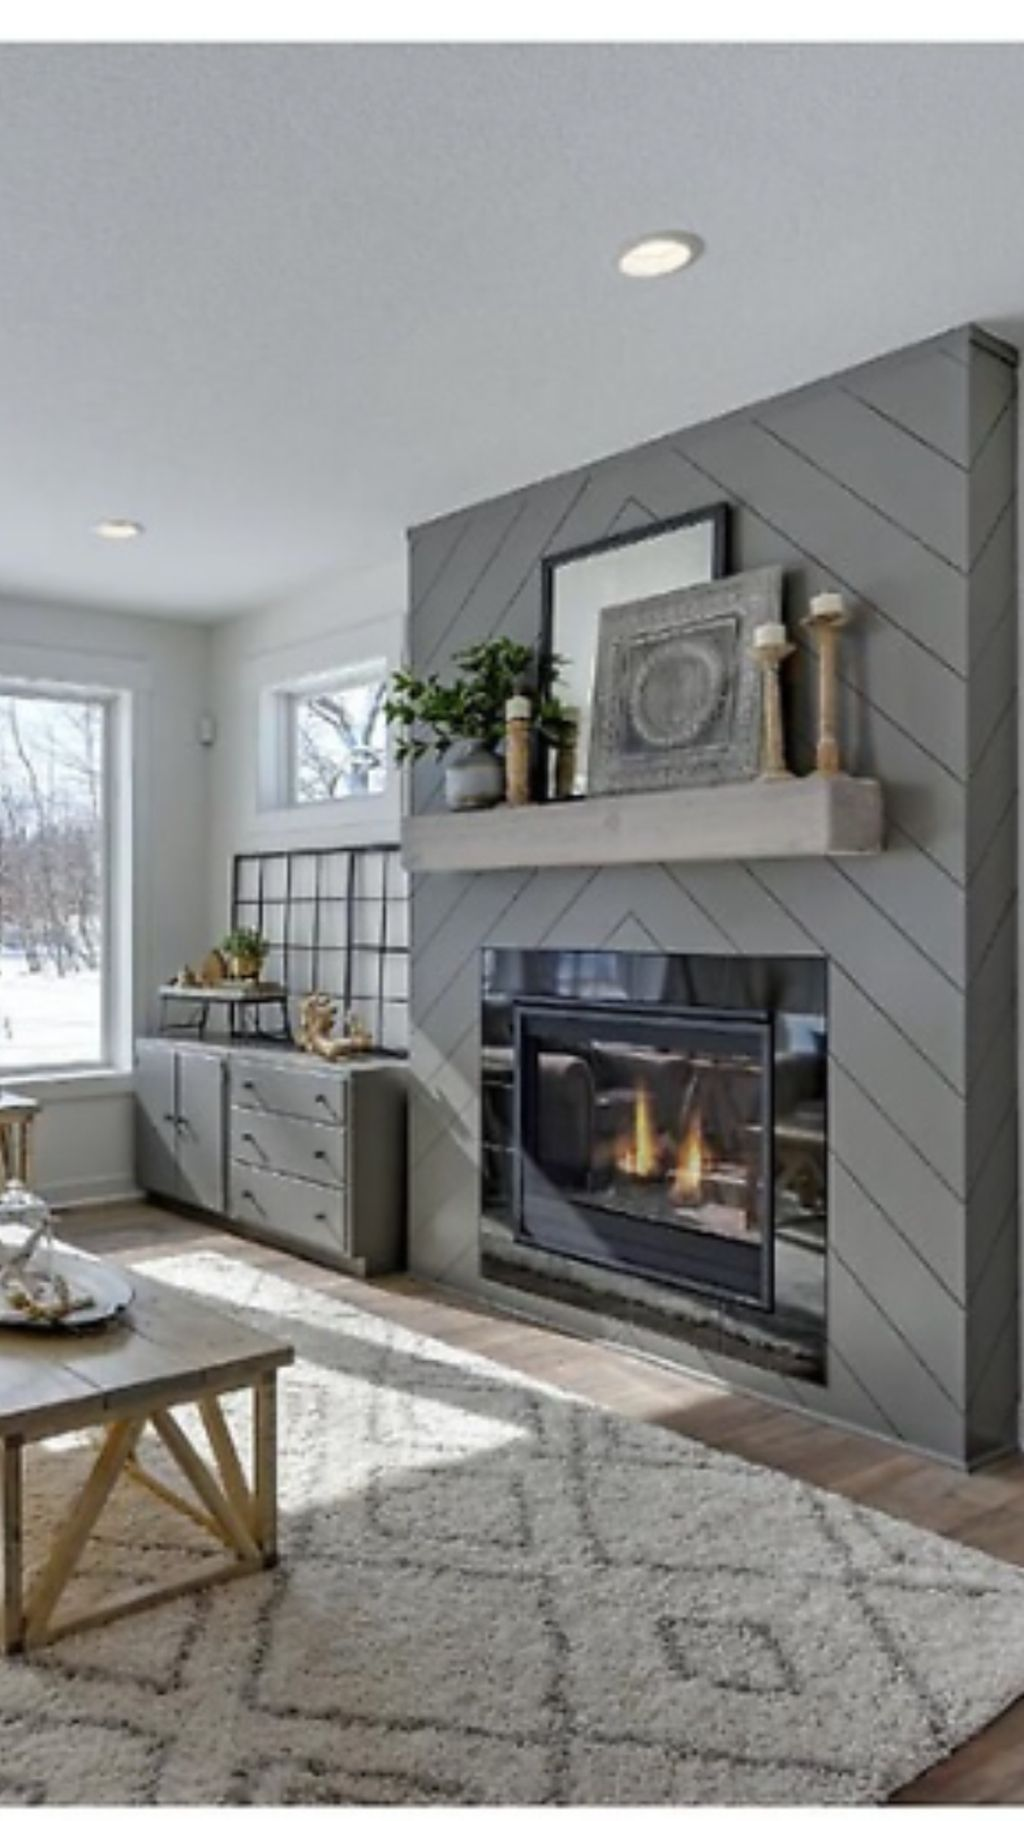 Fireplace Room Ideas - Warm Living Room to Relax with images